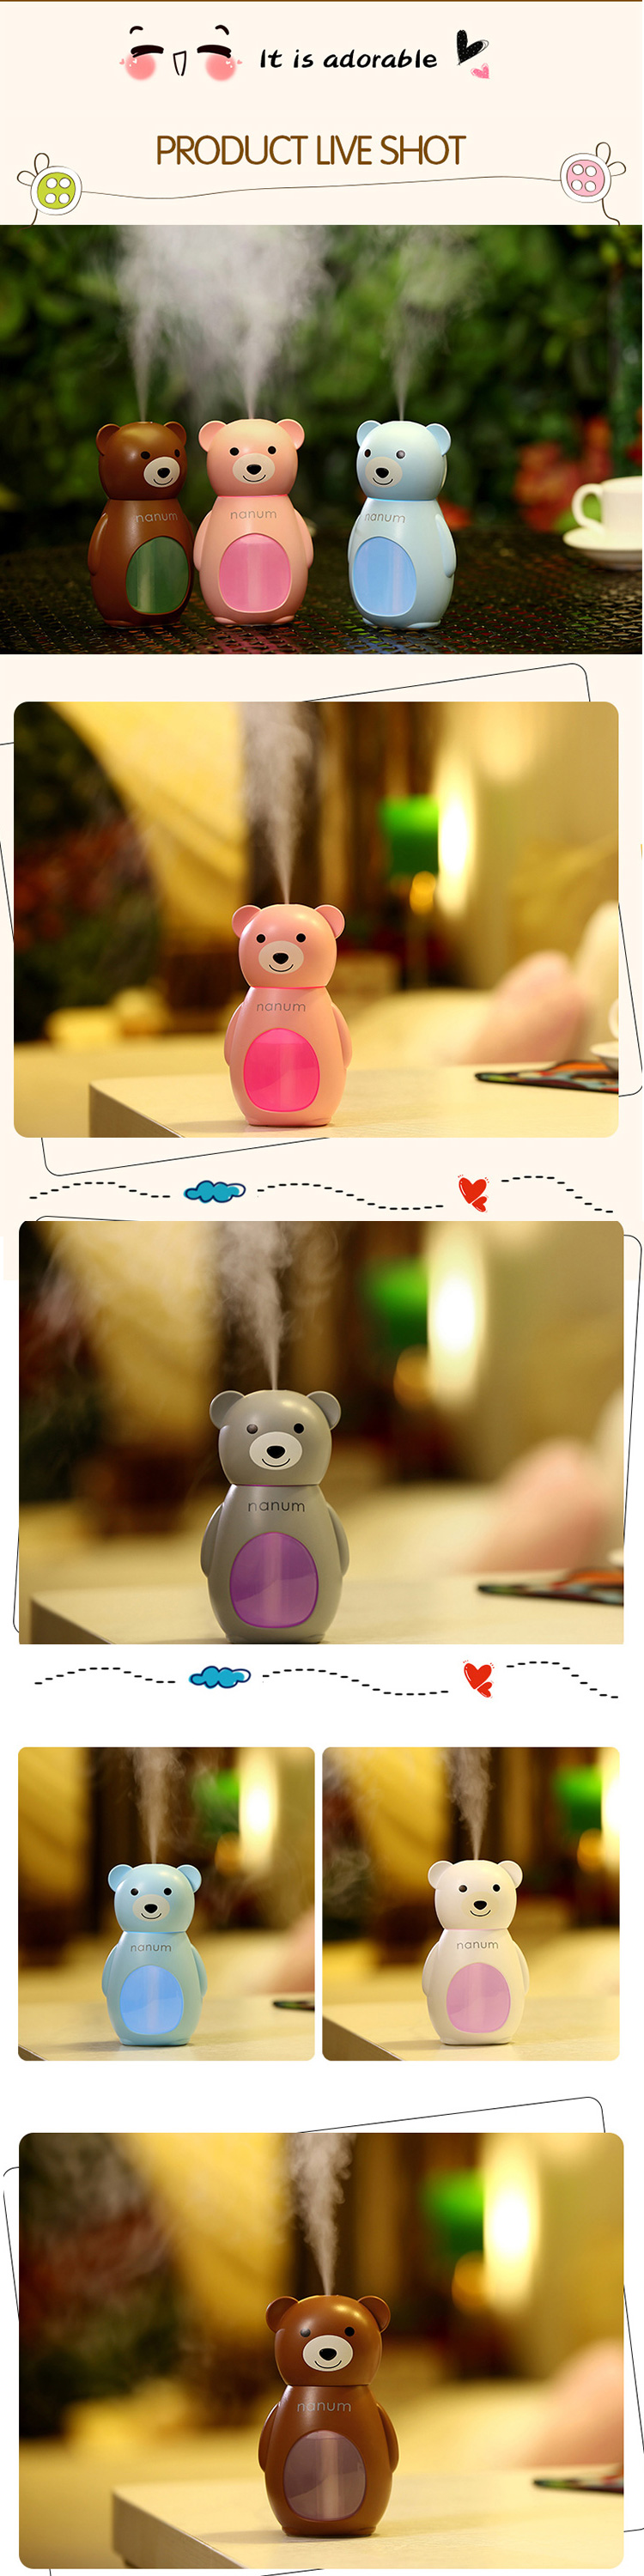 DC 5V Shenzhen Unique Baby Cute Humidifier for Bedroom with LED Night Light